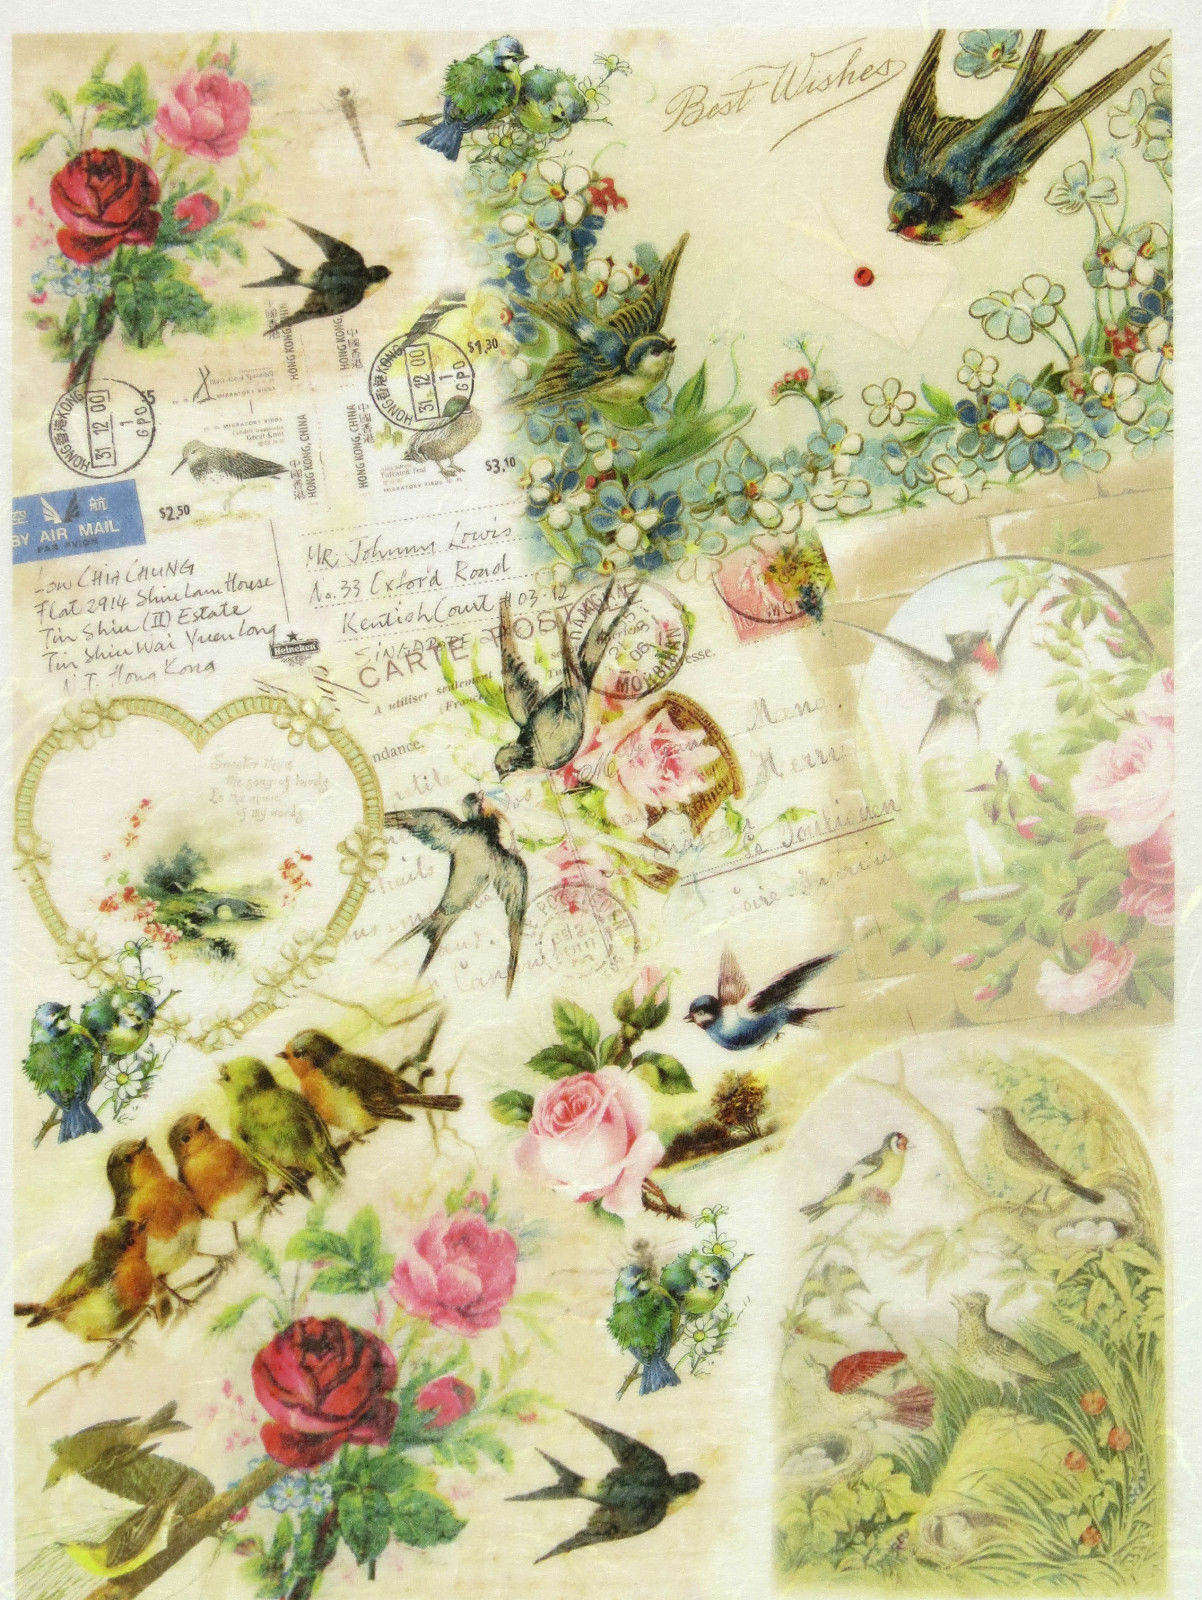 Rice Paper Vintage Small Roses for Decoupage Decopatch Scrapbook Craft Sheet